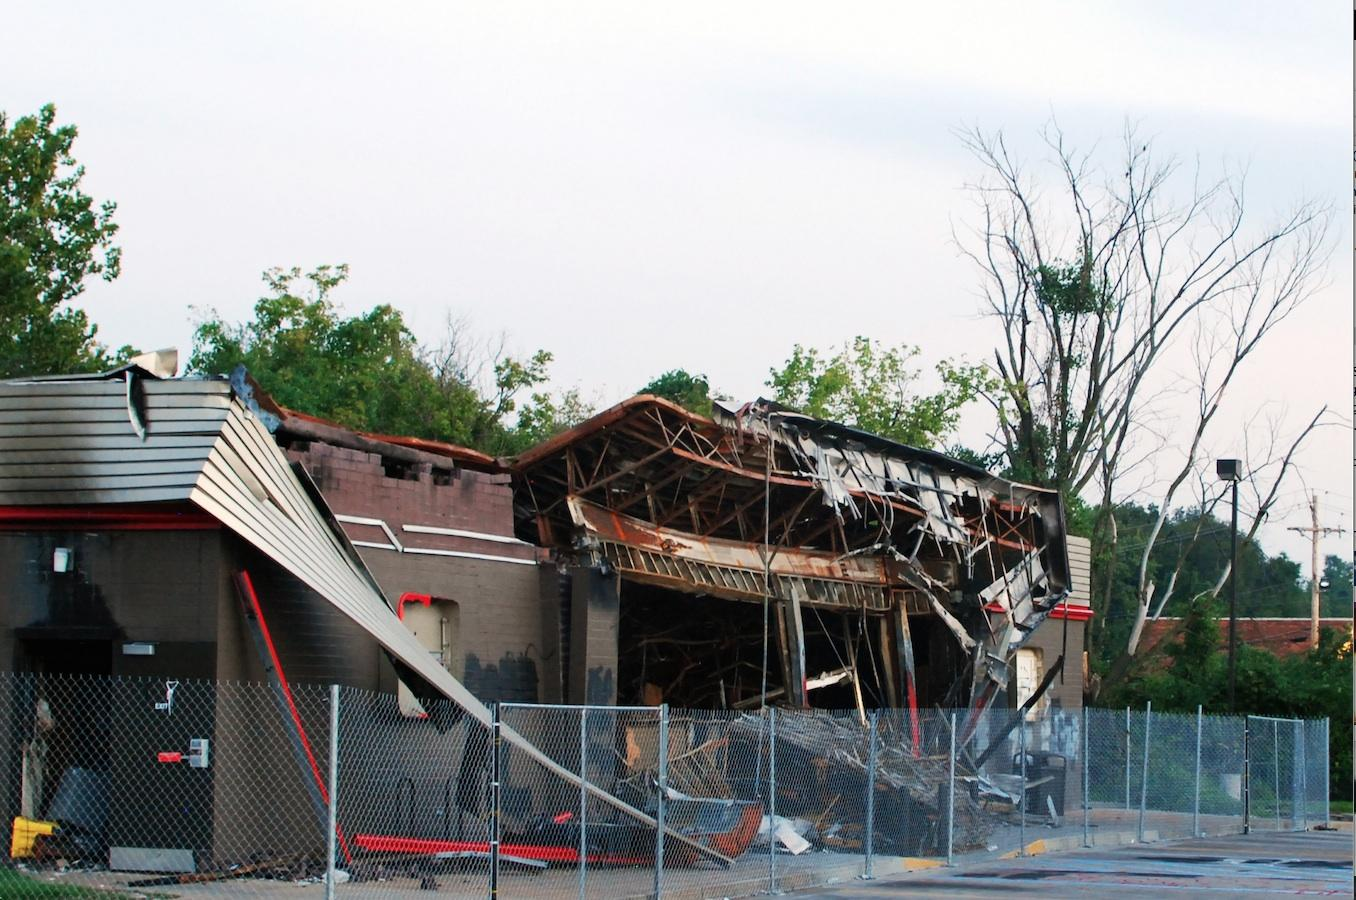 Remains of the Ferguson QuikTrip that was burned by protestors.